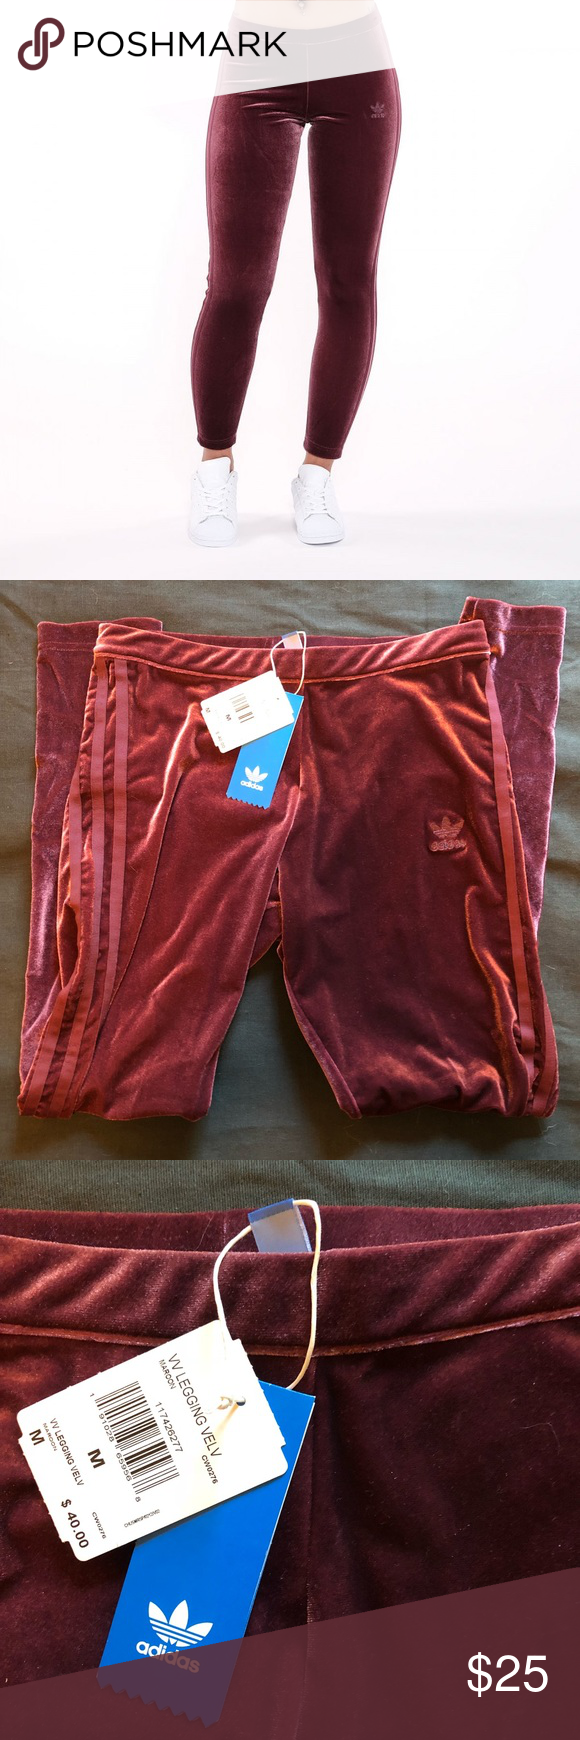 5422c008873b53 NEW Adidas Velvet Vibes leggings in Maroon MEDIUM New with tags! True to  size.